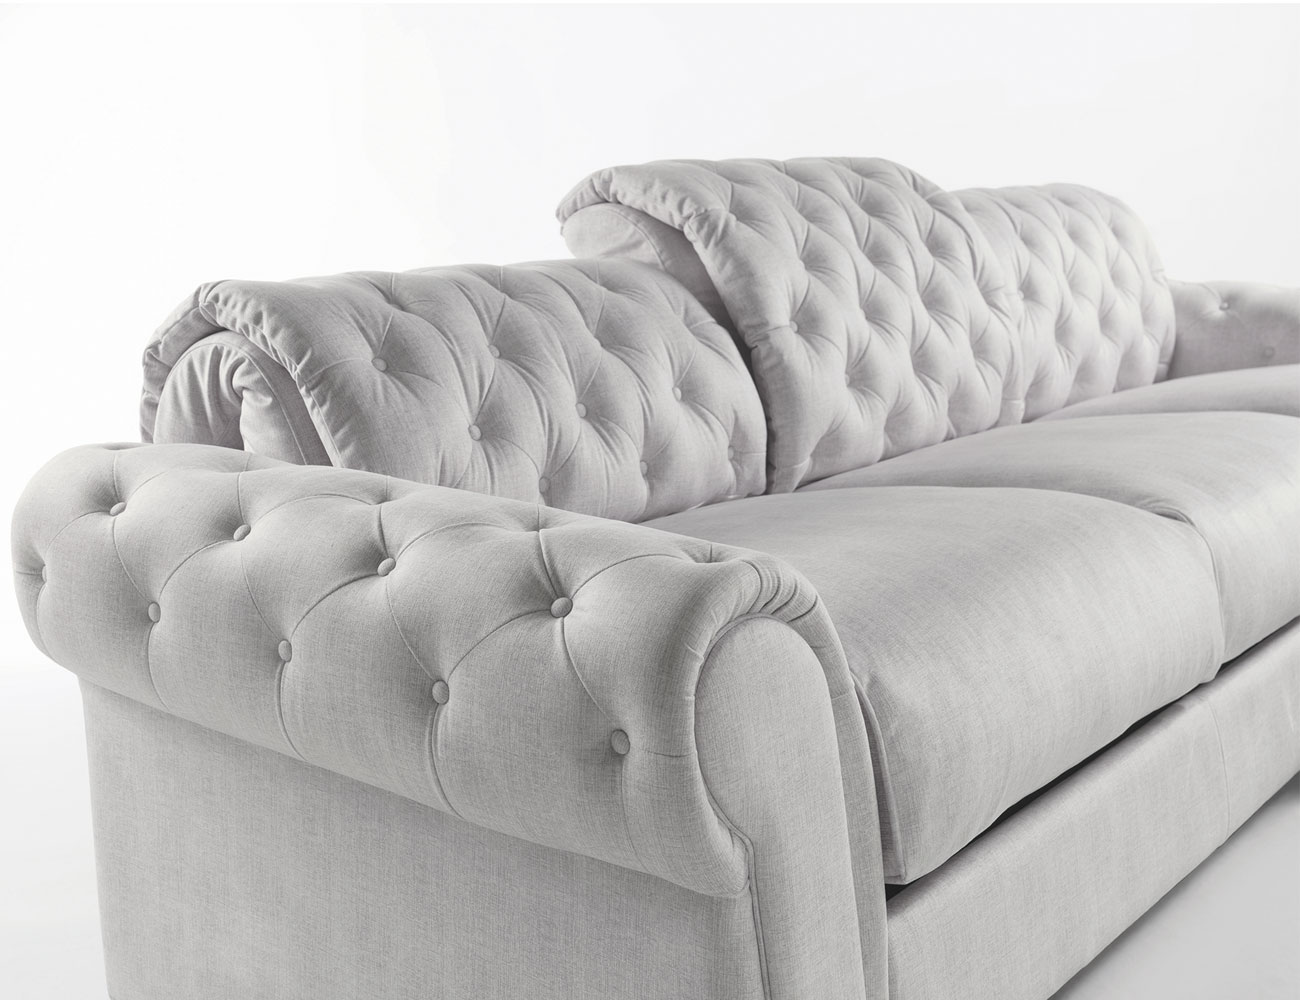 Sofa chaiselongue gran lujo decorativo capitone blanco tela 129